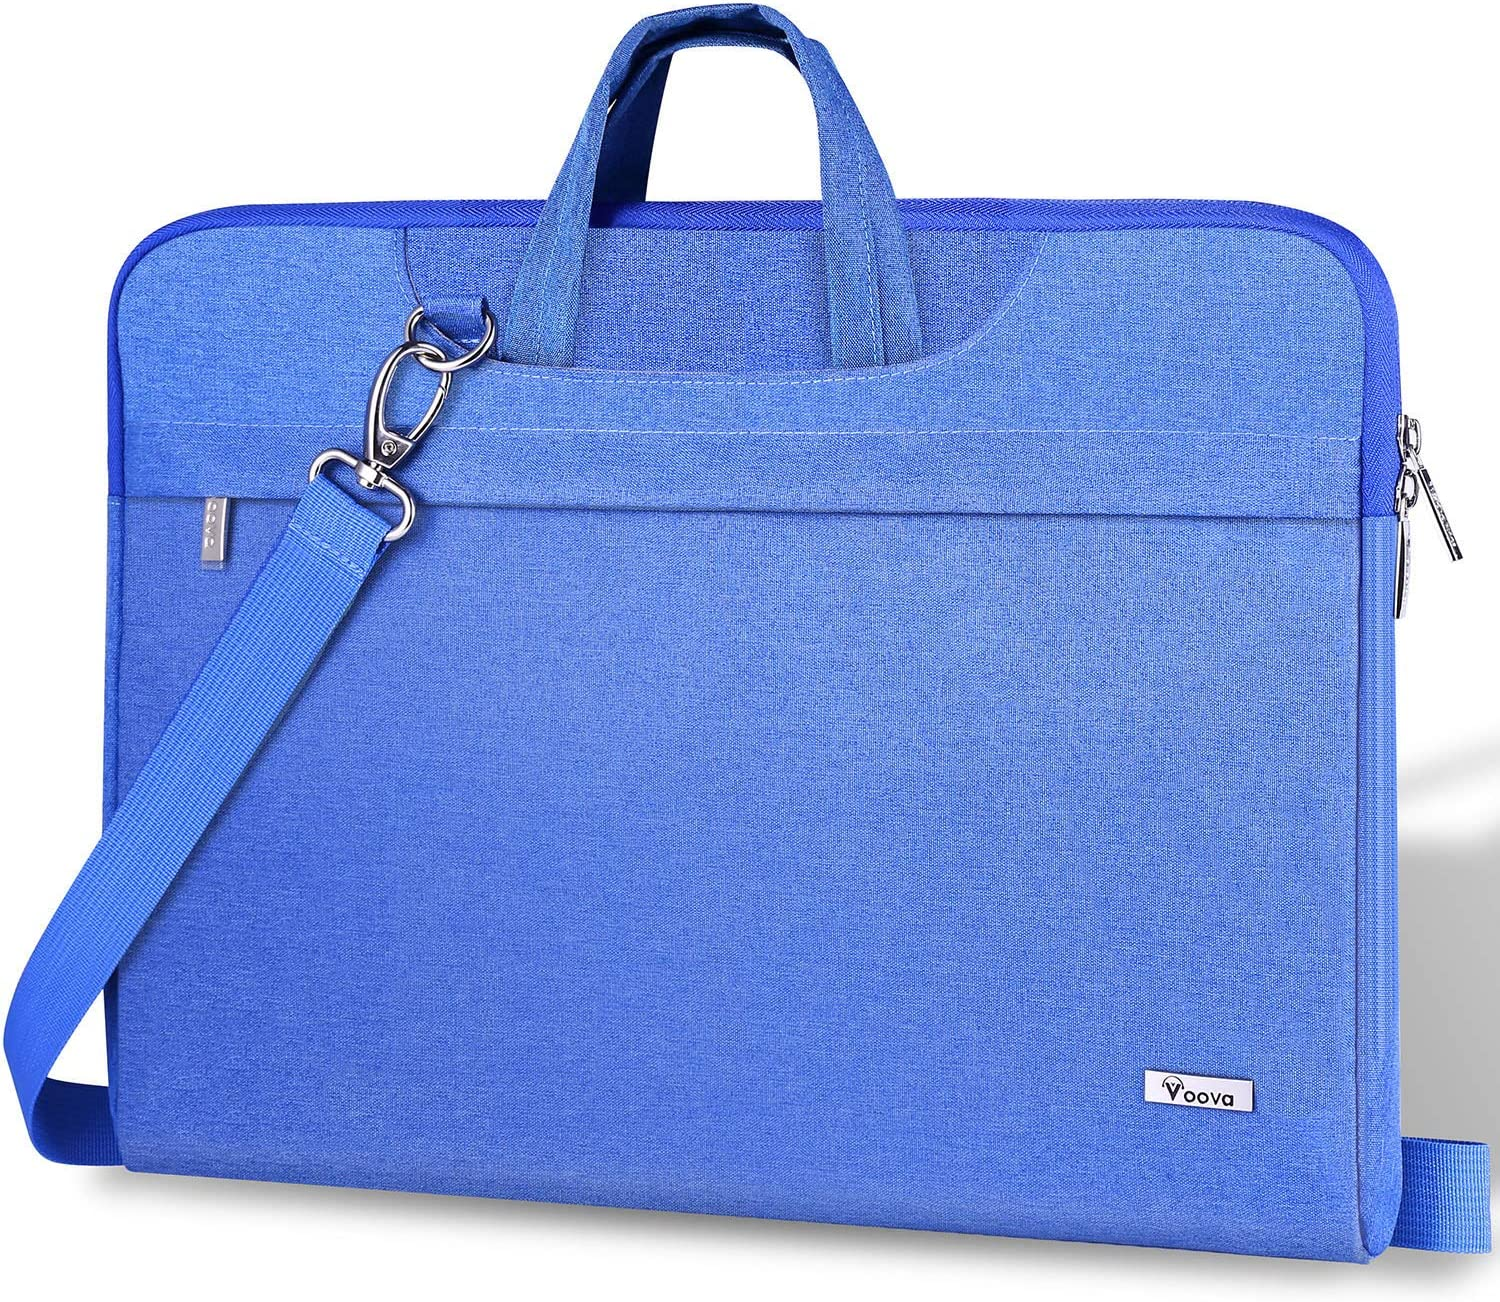 """Voova 14-15.6 Inch Laptop Sleeve Carrying Case, Slim Computer Shoulder Bag with Strap Compatible with MacBook Pro 15.4"""" 16"""" / Surface Book 2/Laptop 3 15"""" Chromebook XPS Messenger Briefcase, Light Blue"""